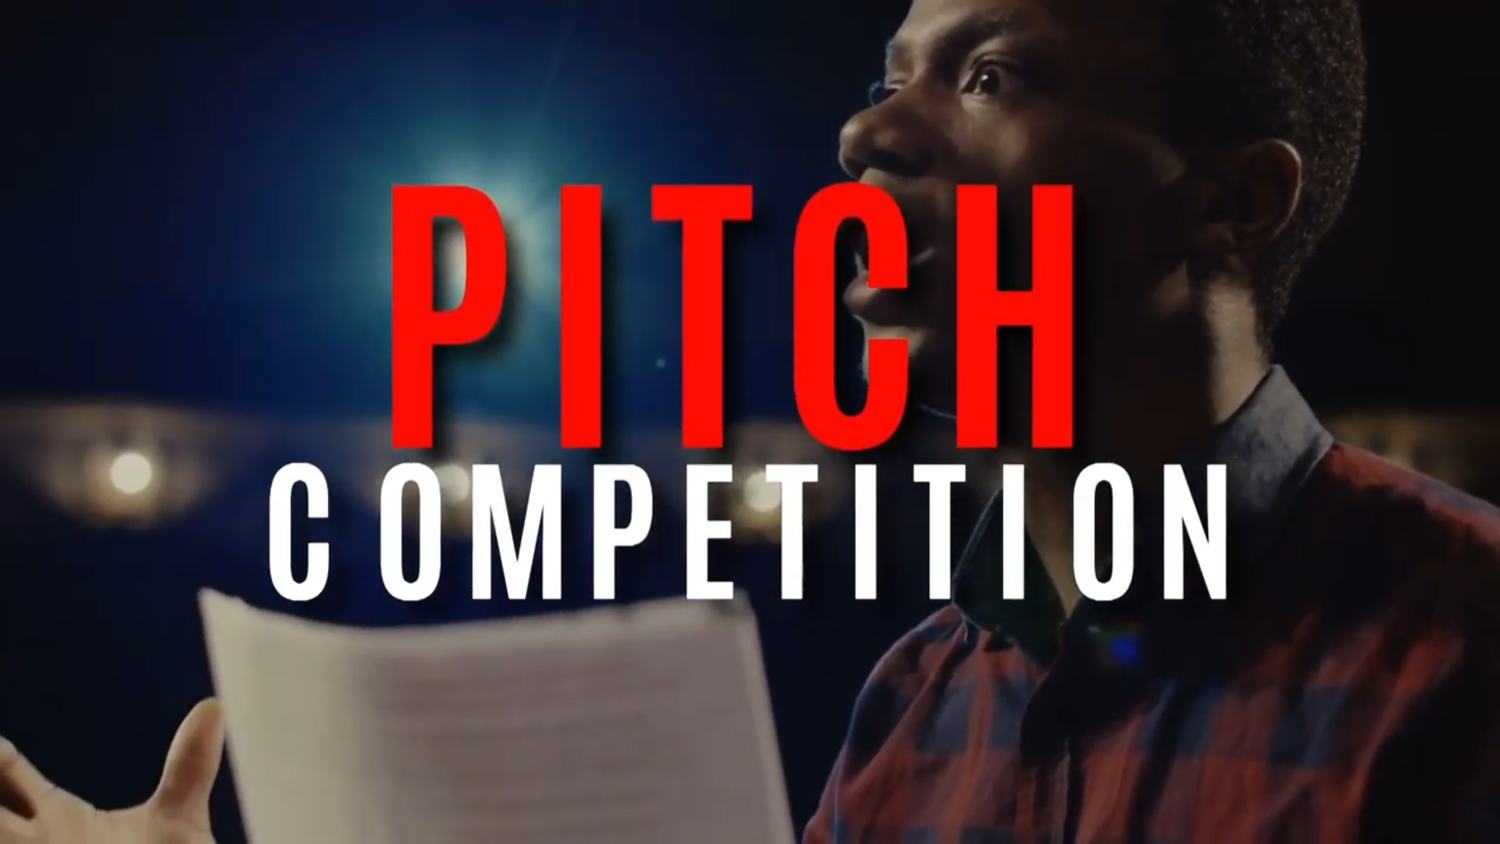 Pitch Competition.png